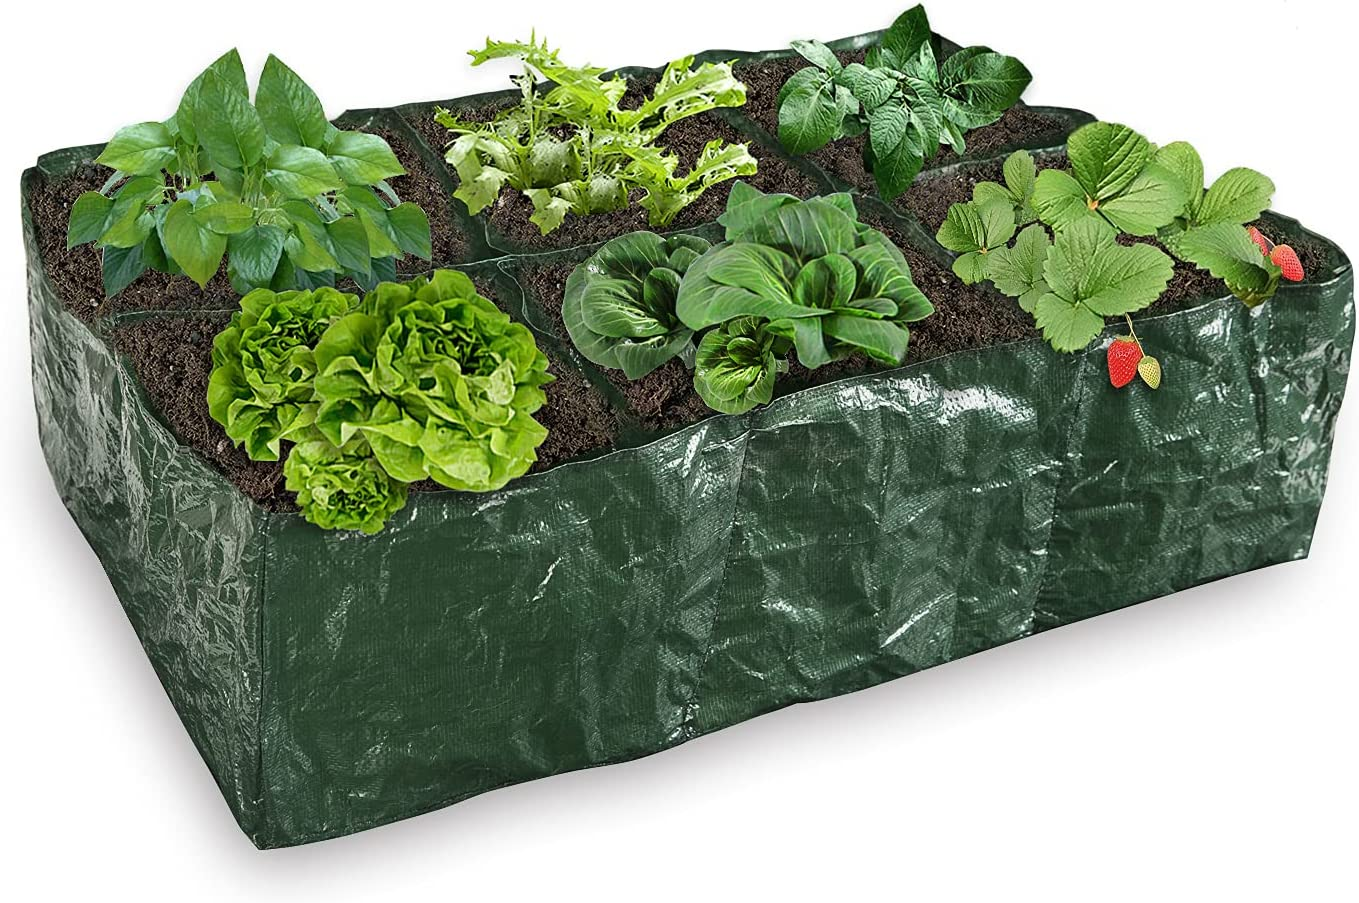 Hemeto 35 Gallons Raised Garden Planter Fabric Bed, 6 Divided Grids Durable Square Planting Grow Pot for Potato Carrot Onion Herb Flower and Other Vegetables